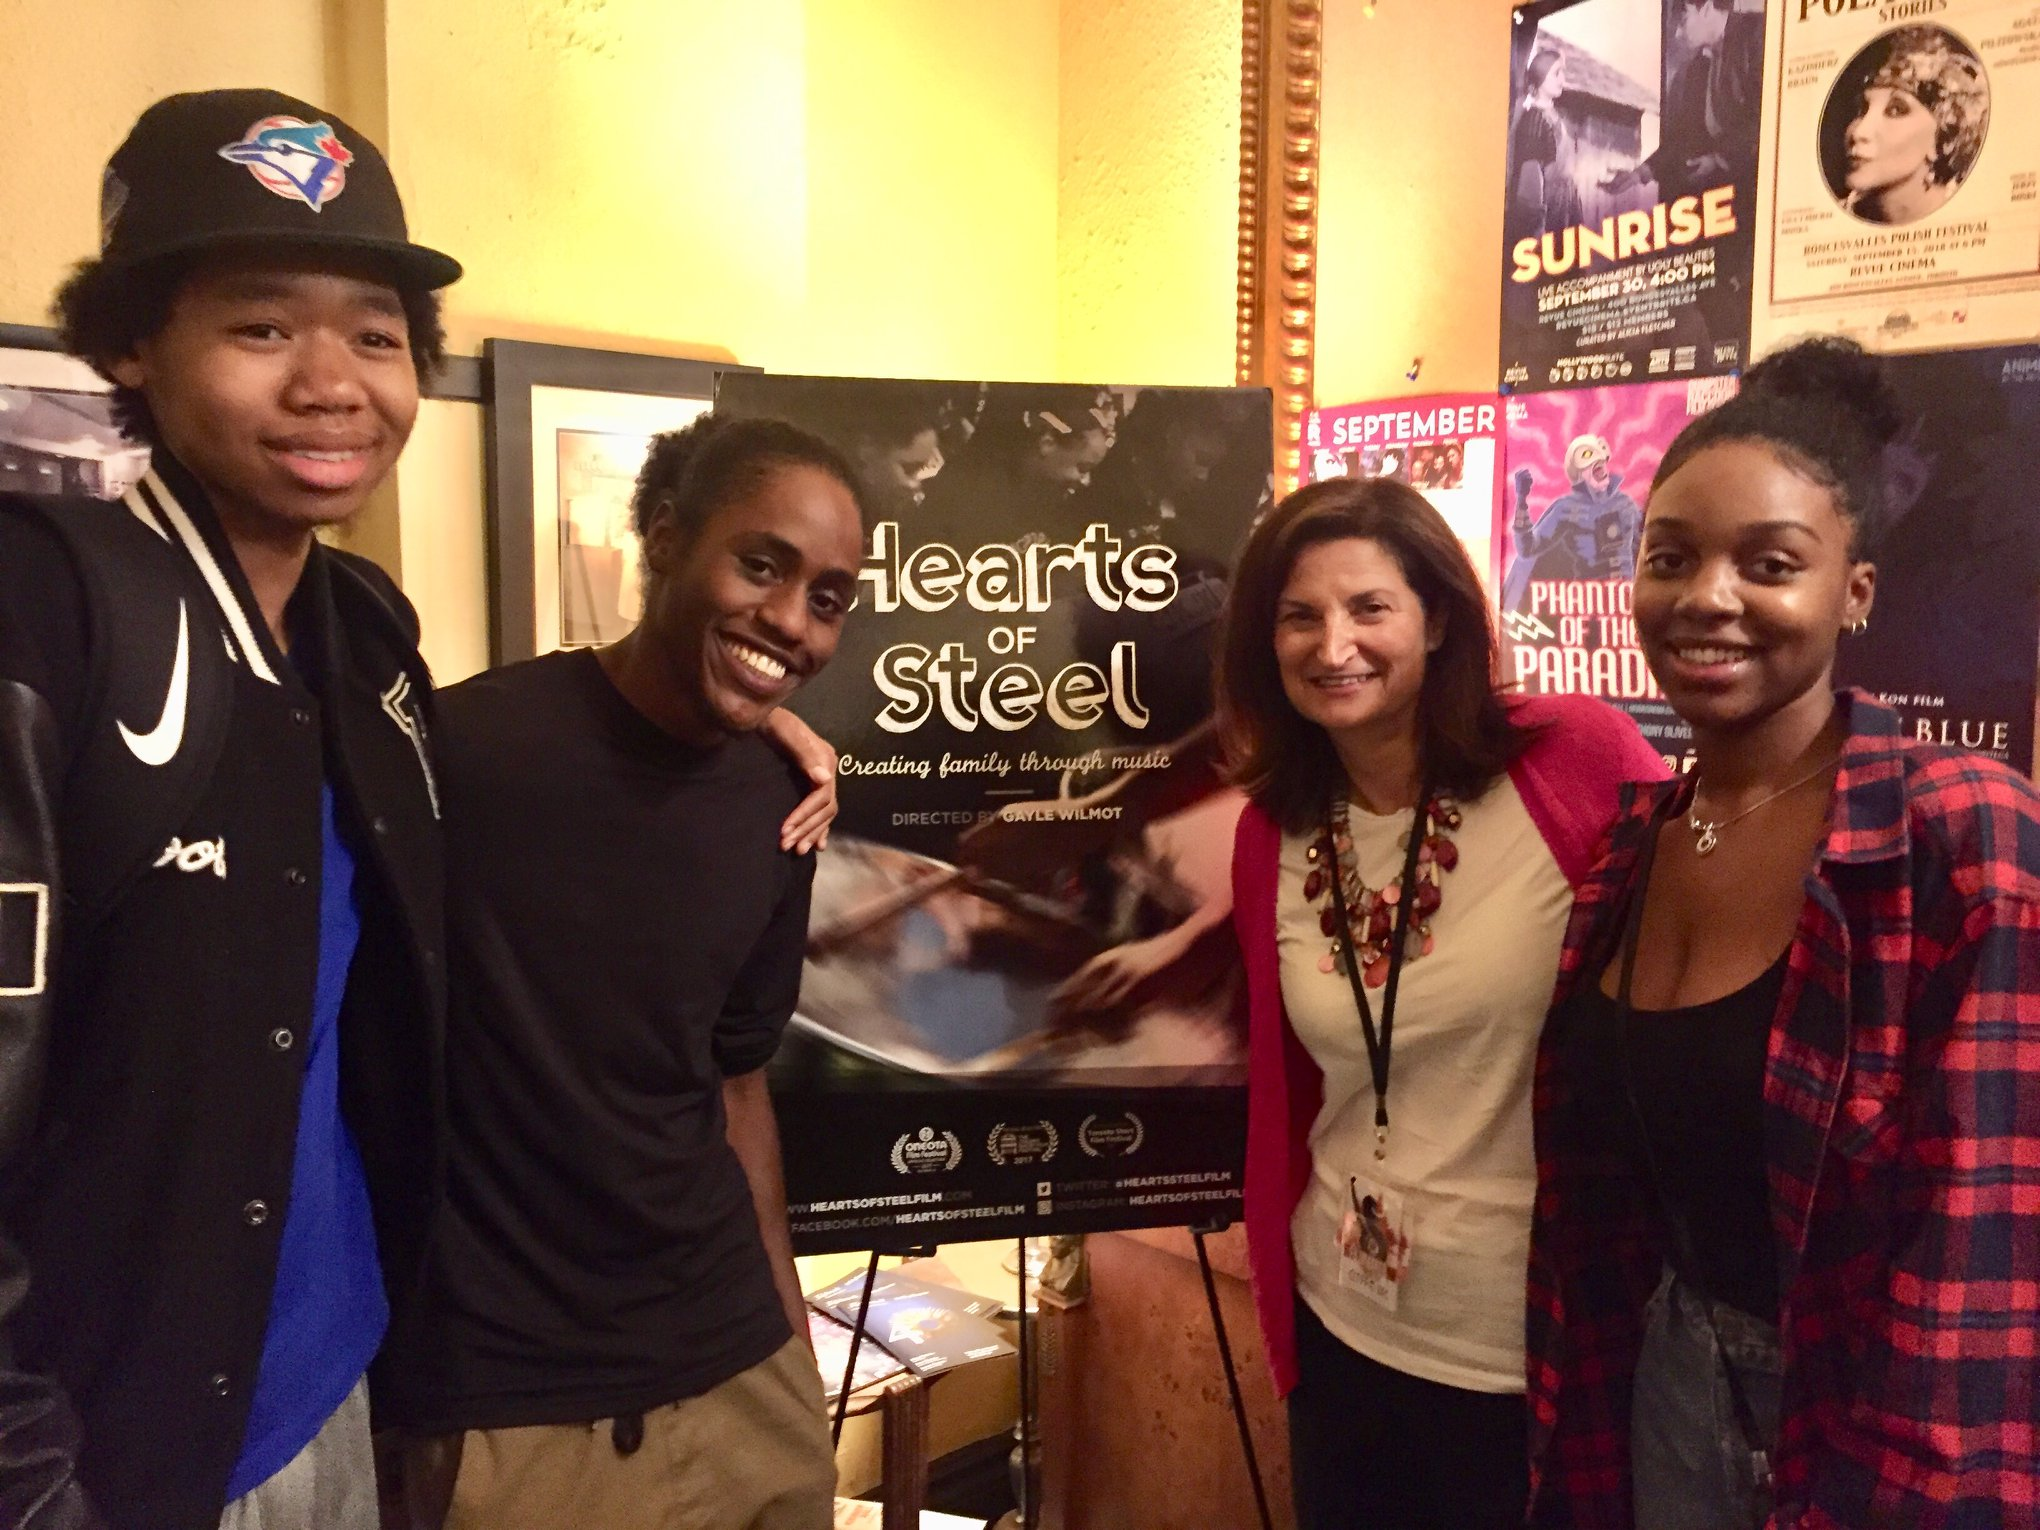 Some of the cast of Hearts of Steel attends the Caribbean Tales Film Festival screening